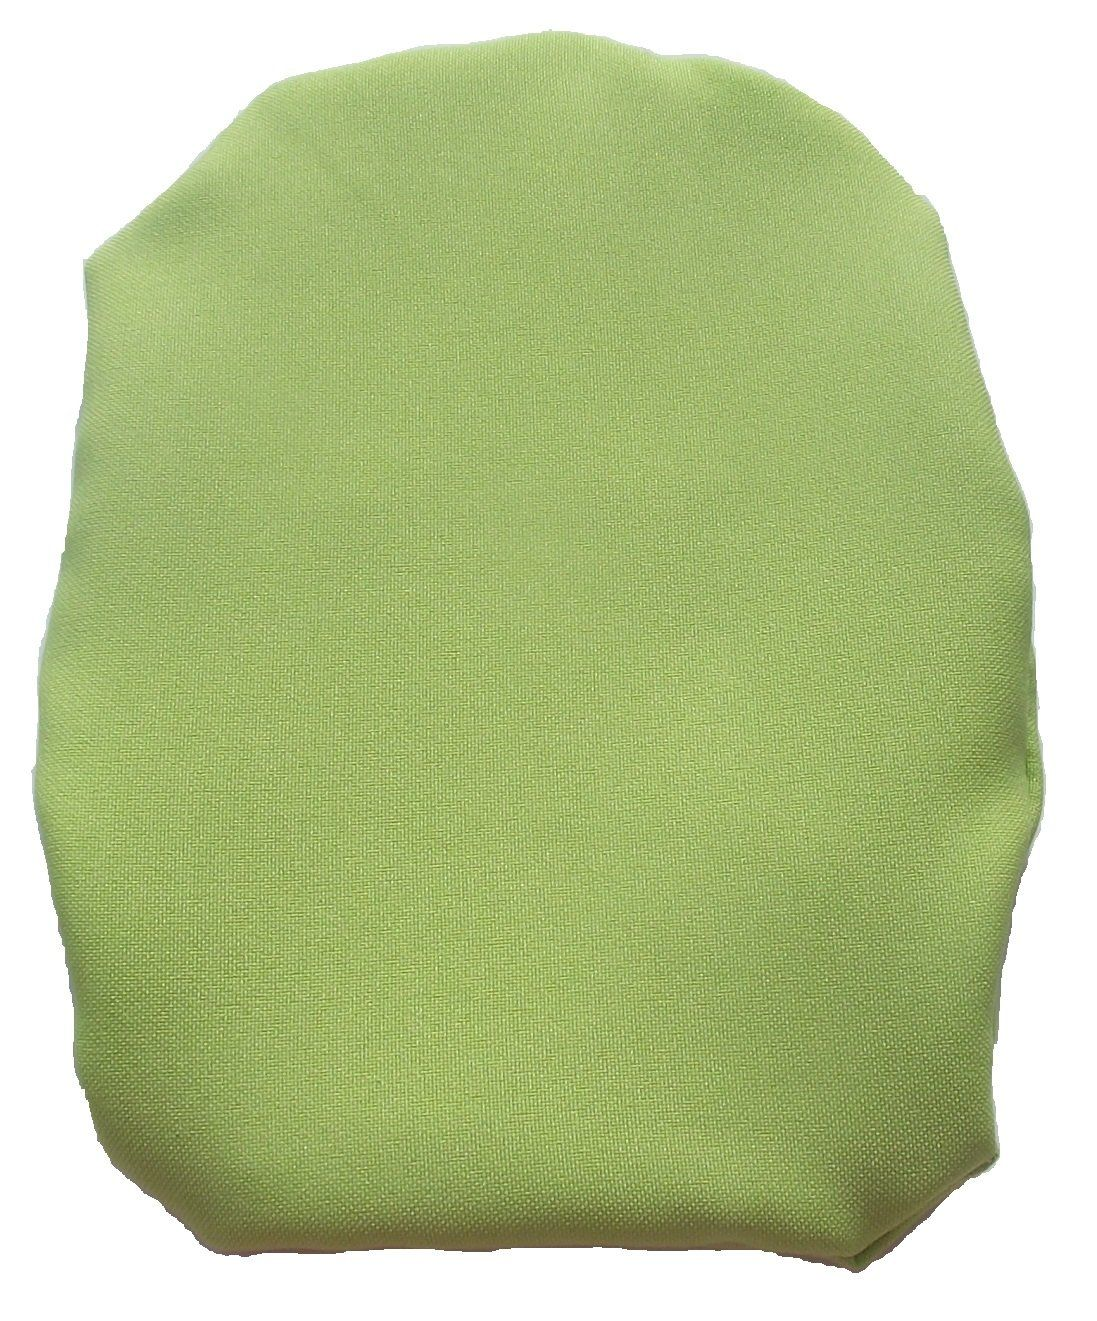 Stoma Cover Bengaline Lime Green af56f0c0f9f0